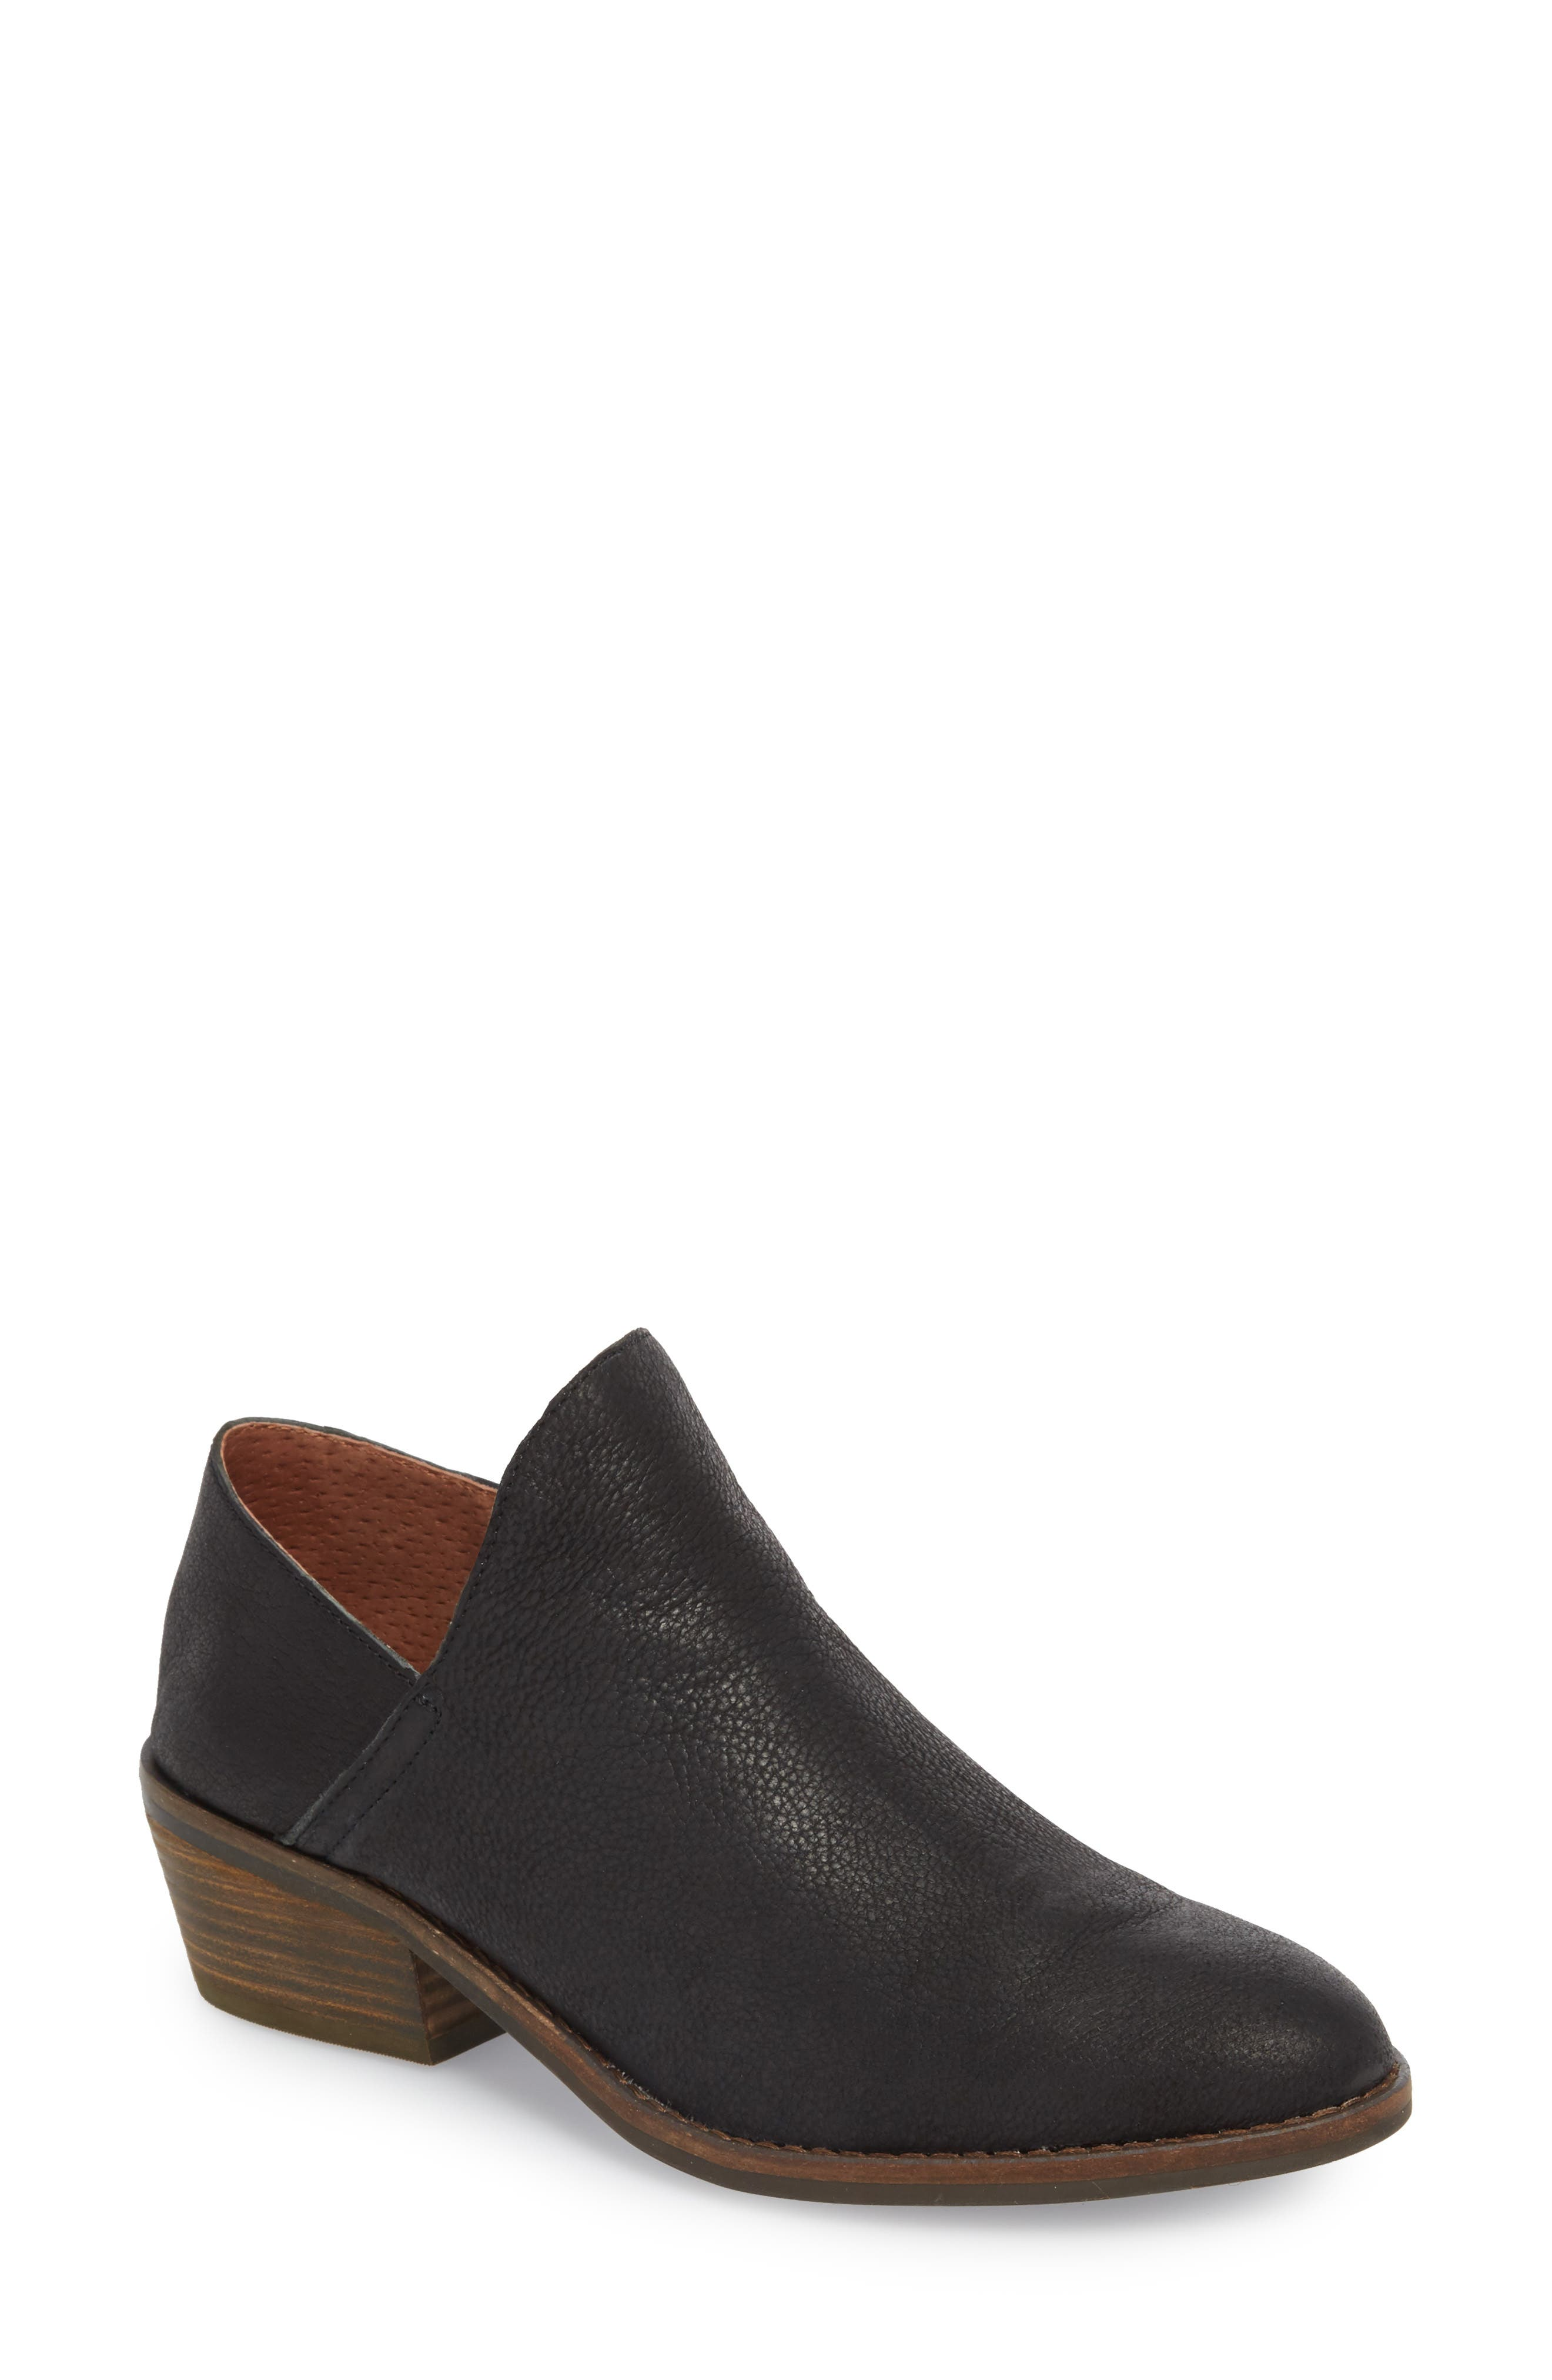 LUCKY BRAND,                             Fausst Bootie,                             Main thumbnail 1, color,                             001